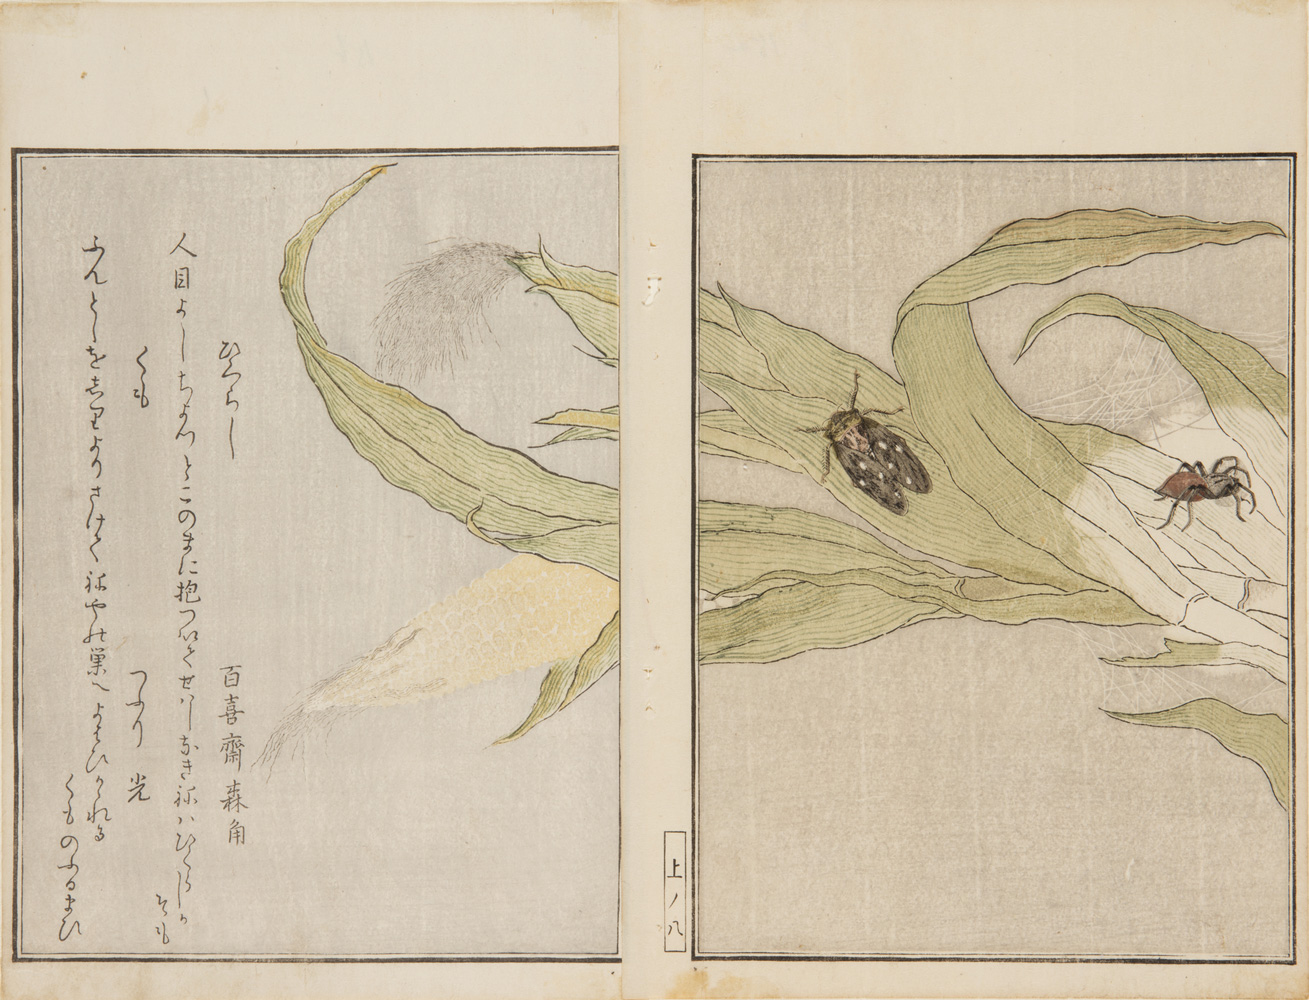 Japanese prints, pages of a book, showing detail of a plant with two bugs crawling on it.